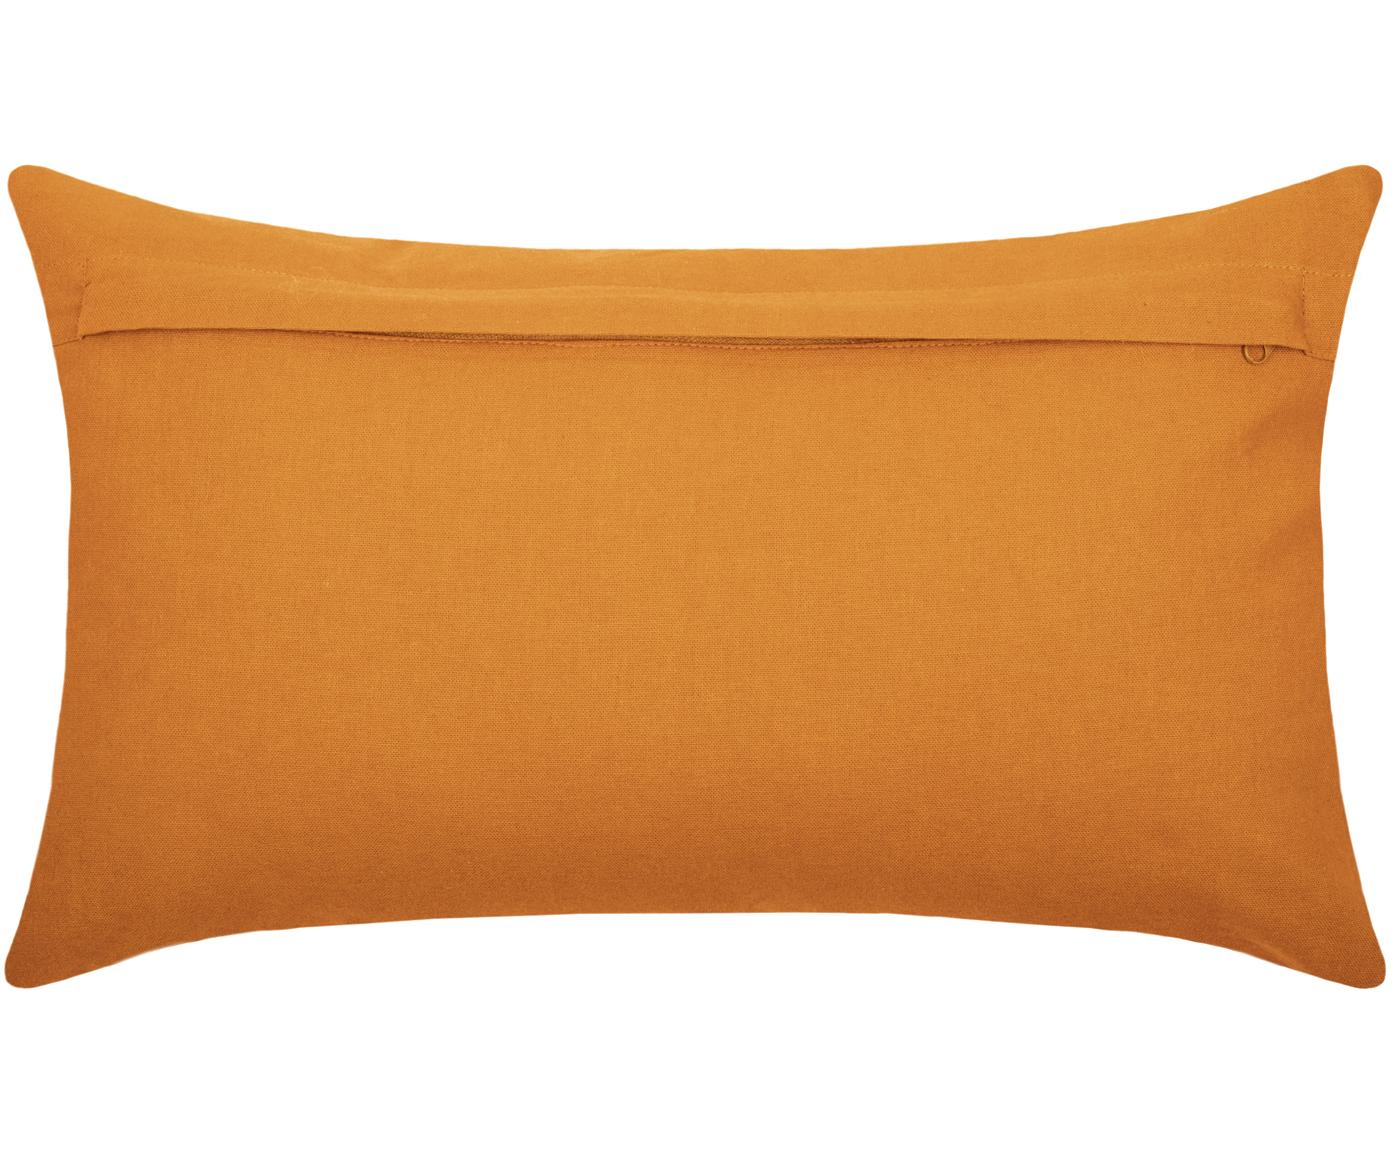 Coussin décoratif rectangulaire Gopher, Jaune moutarde